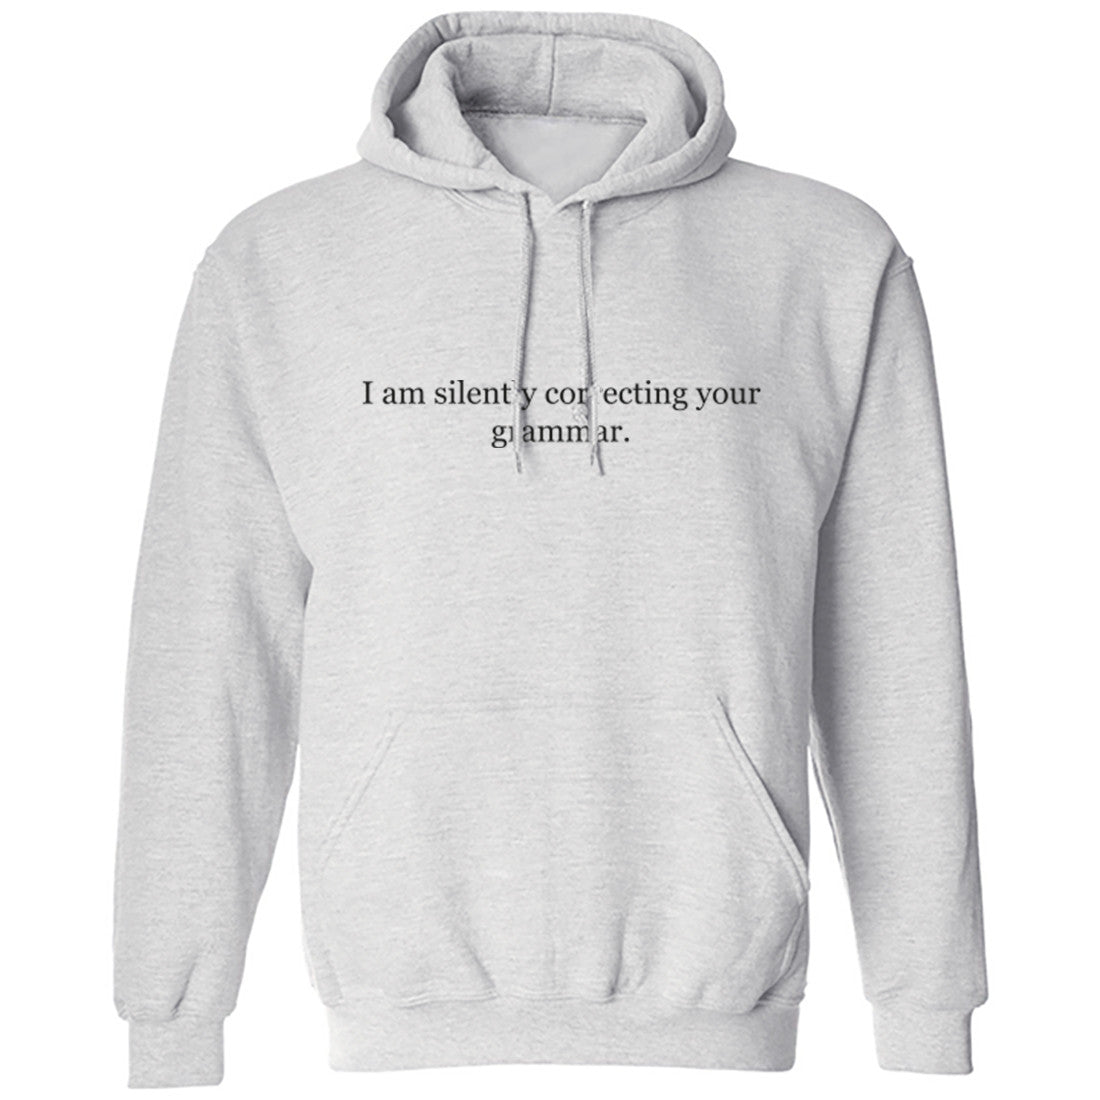 Silently Correcting Your Grammar Unisex Hoodie K0189 - Illustrated Identity Ltd.